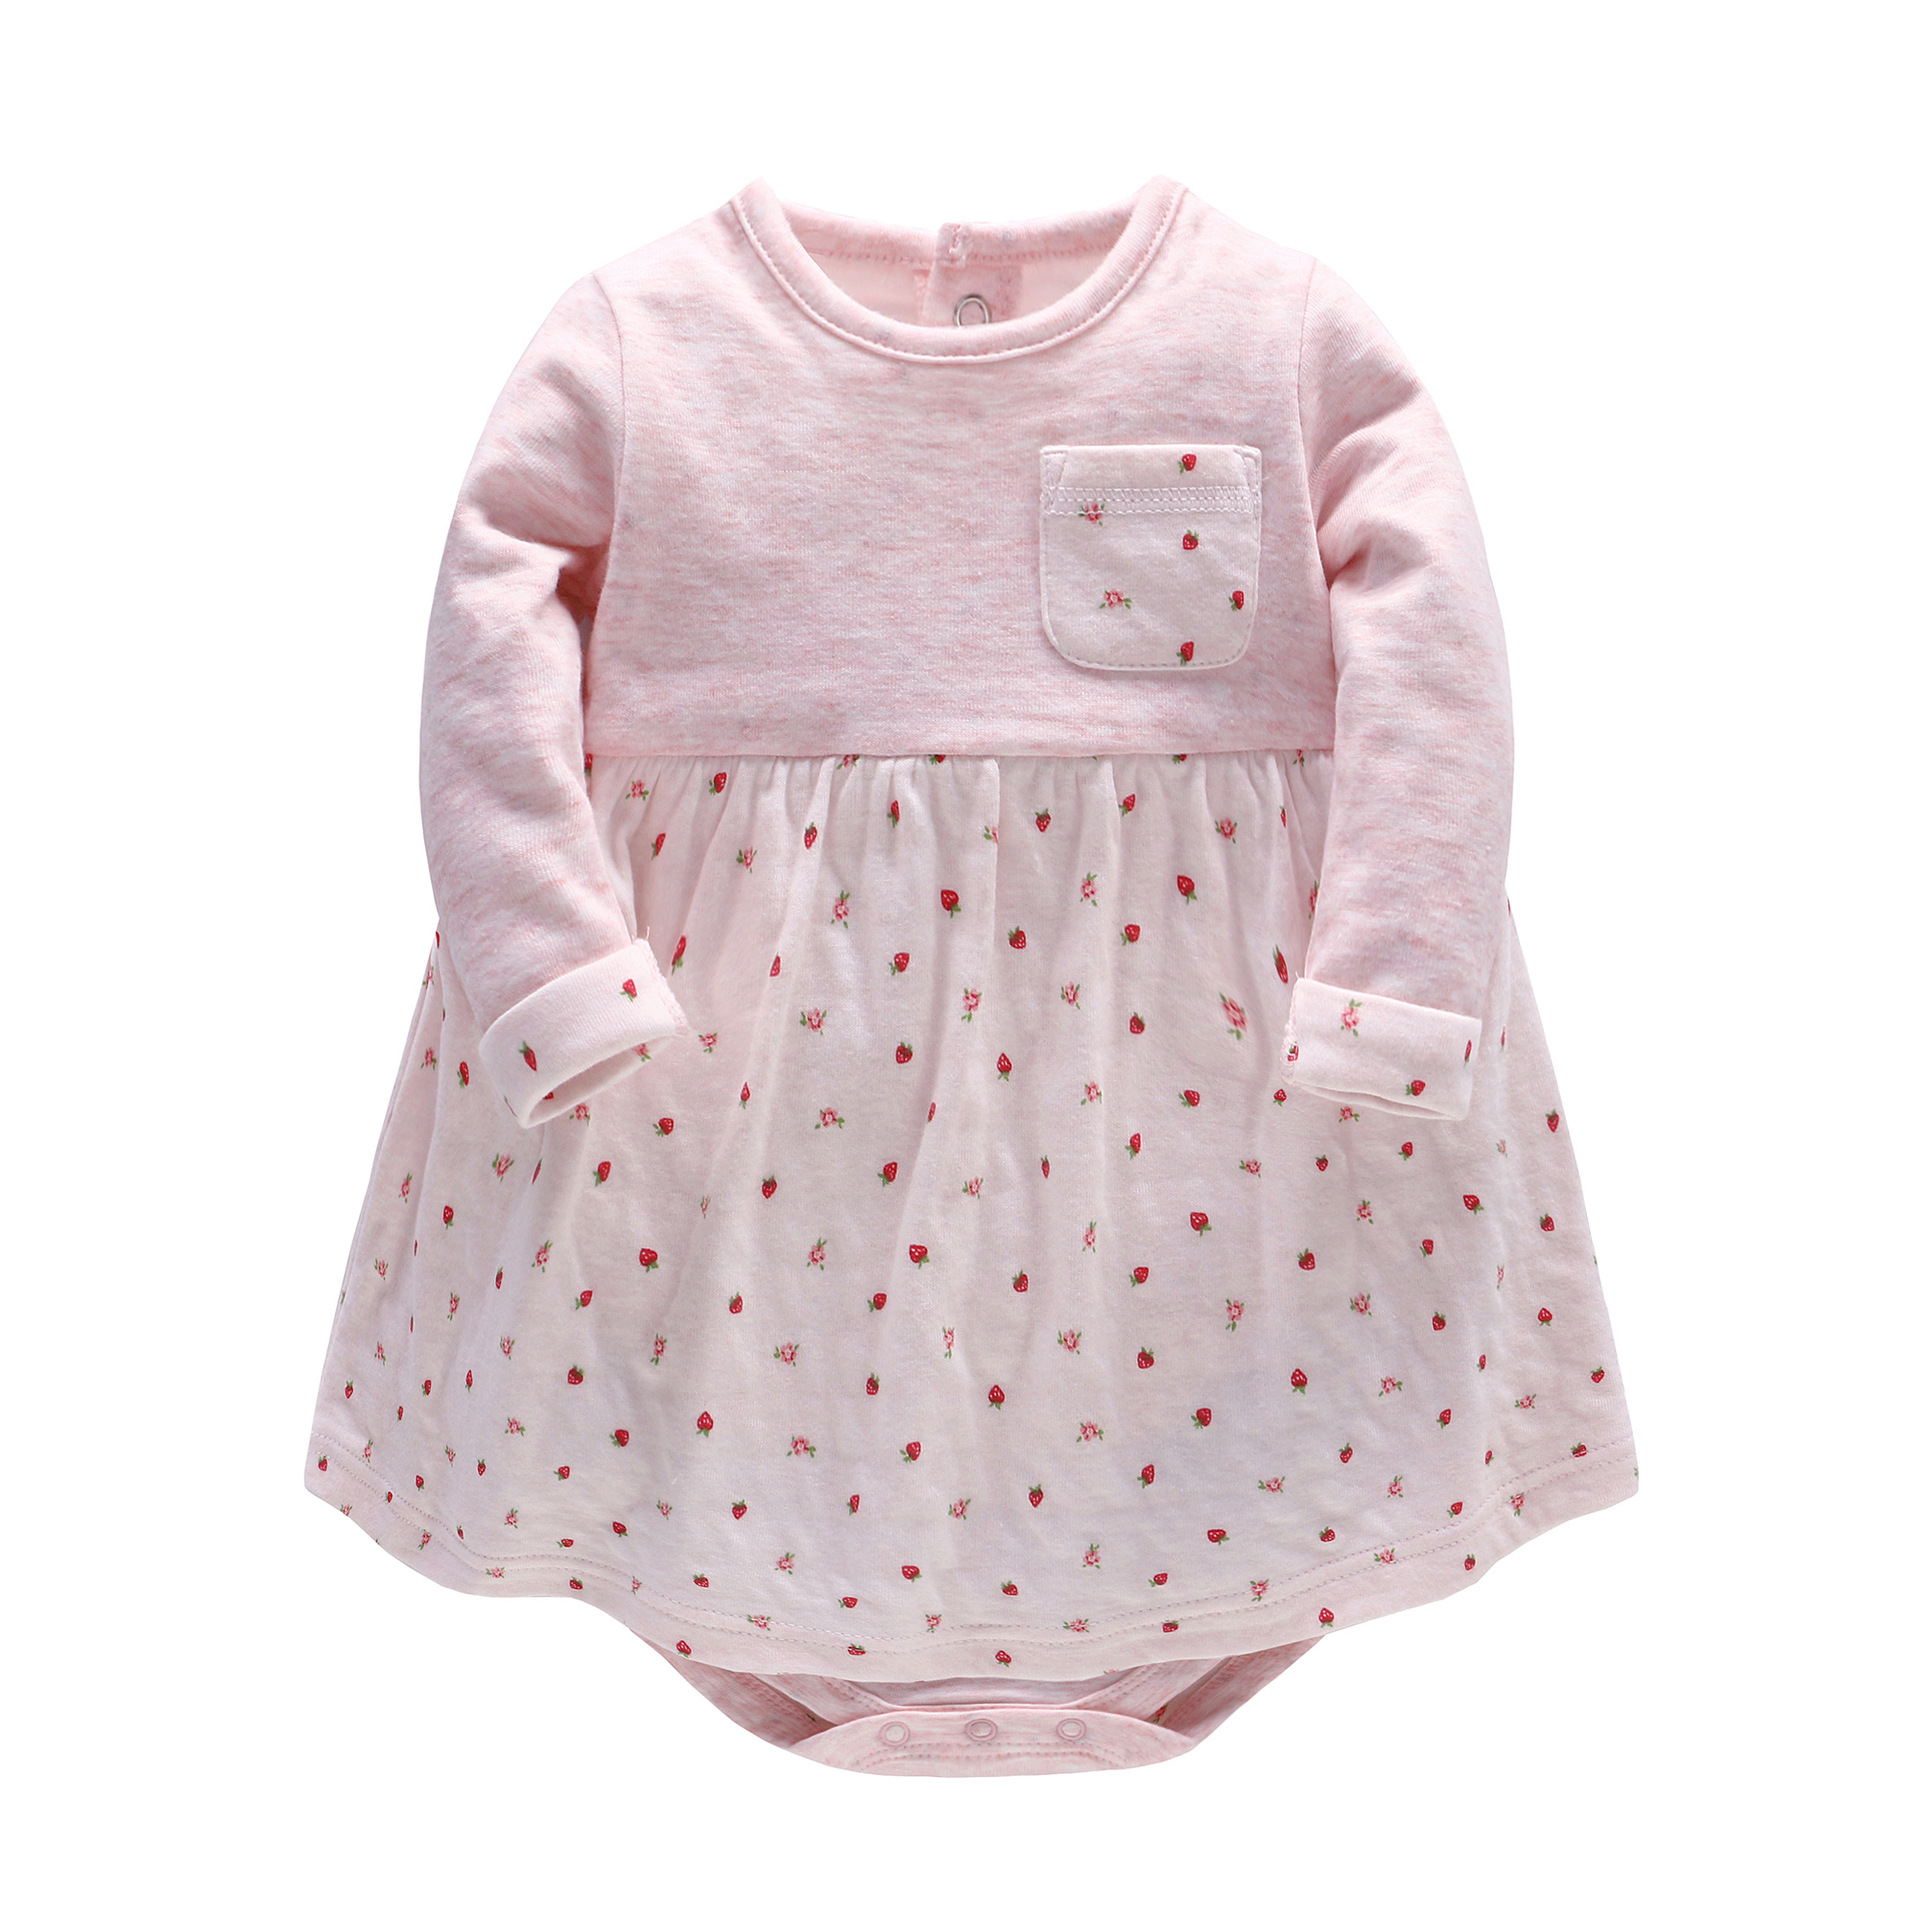 2017 New Fashion Baby Girl Dress Baby Spring Autumn Long Sleeve Strawberry Flower Printed Dress Infants